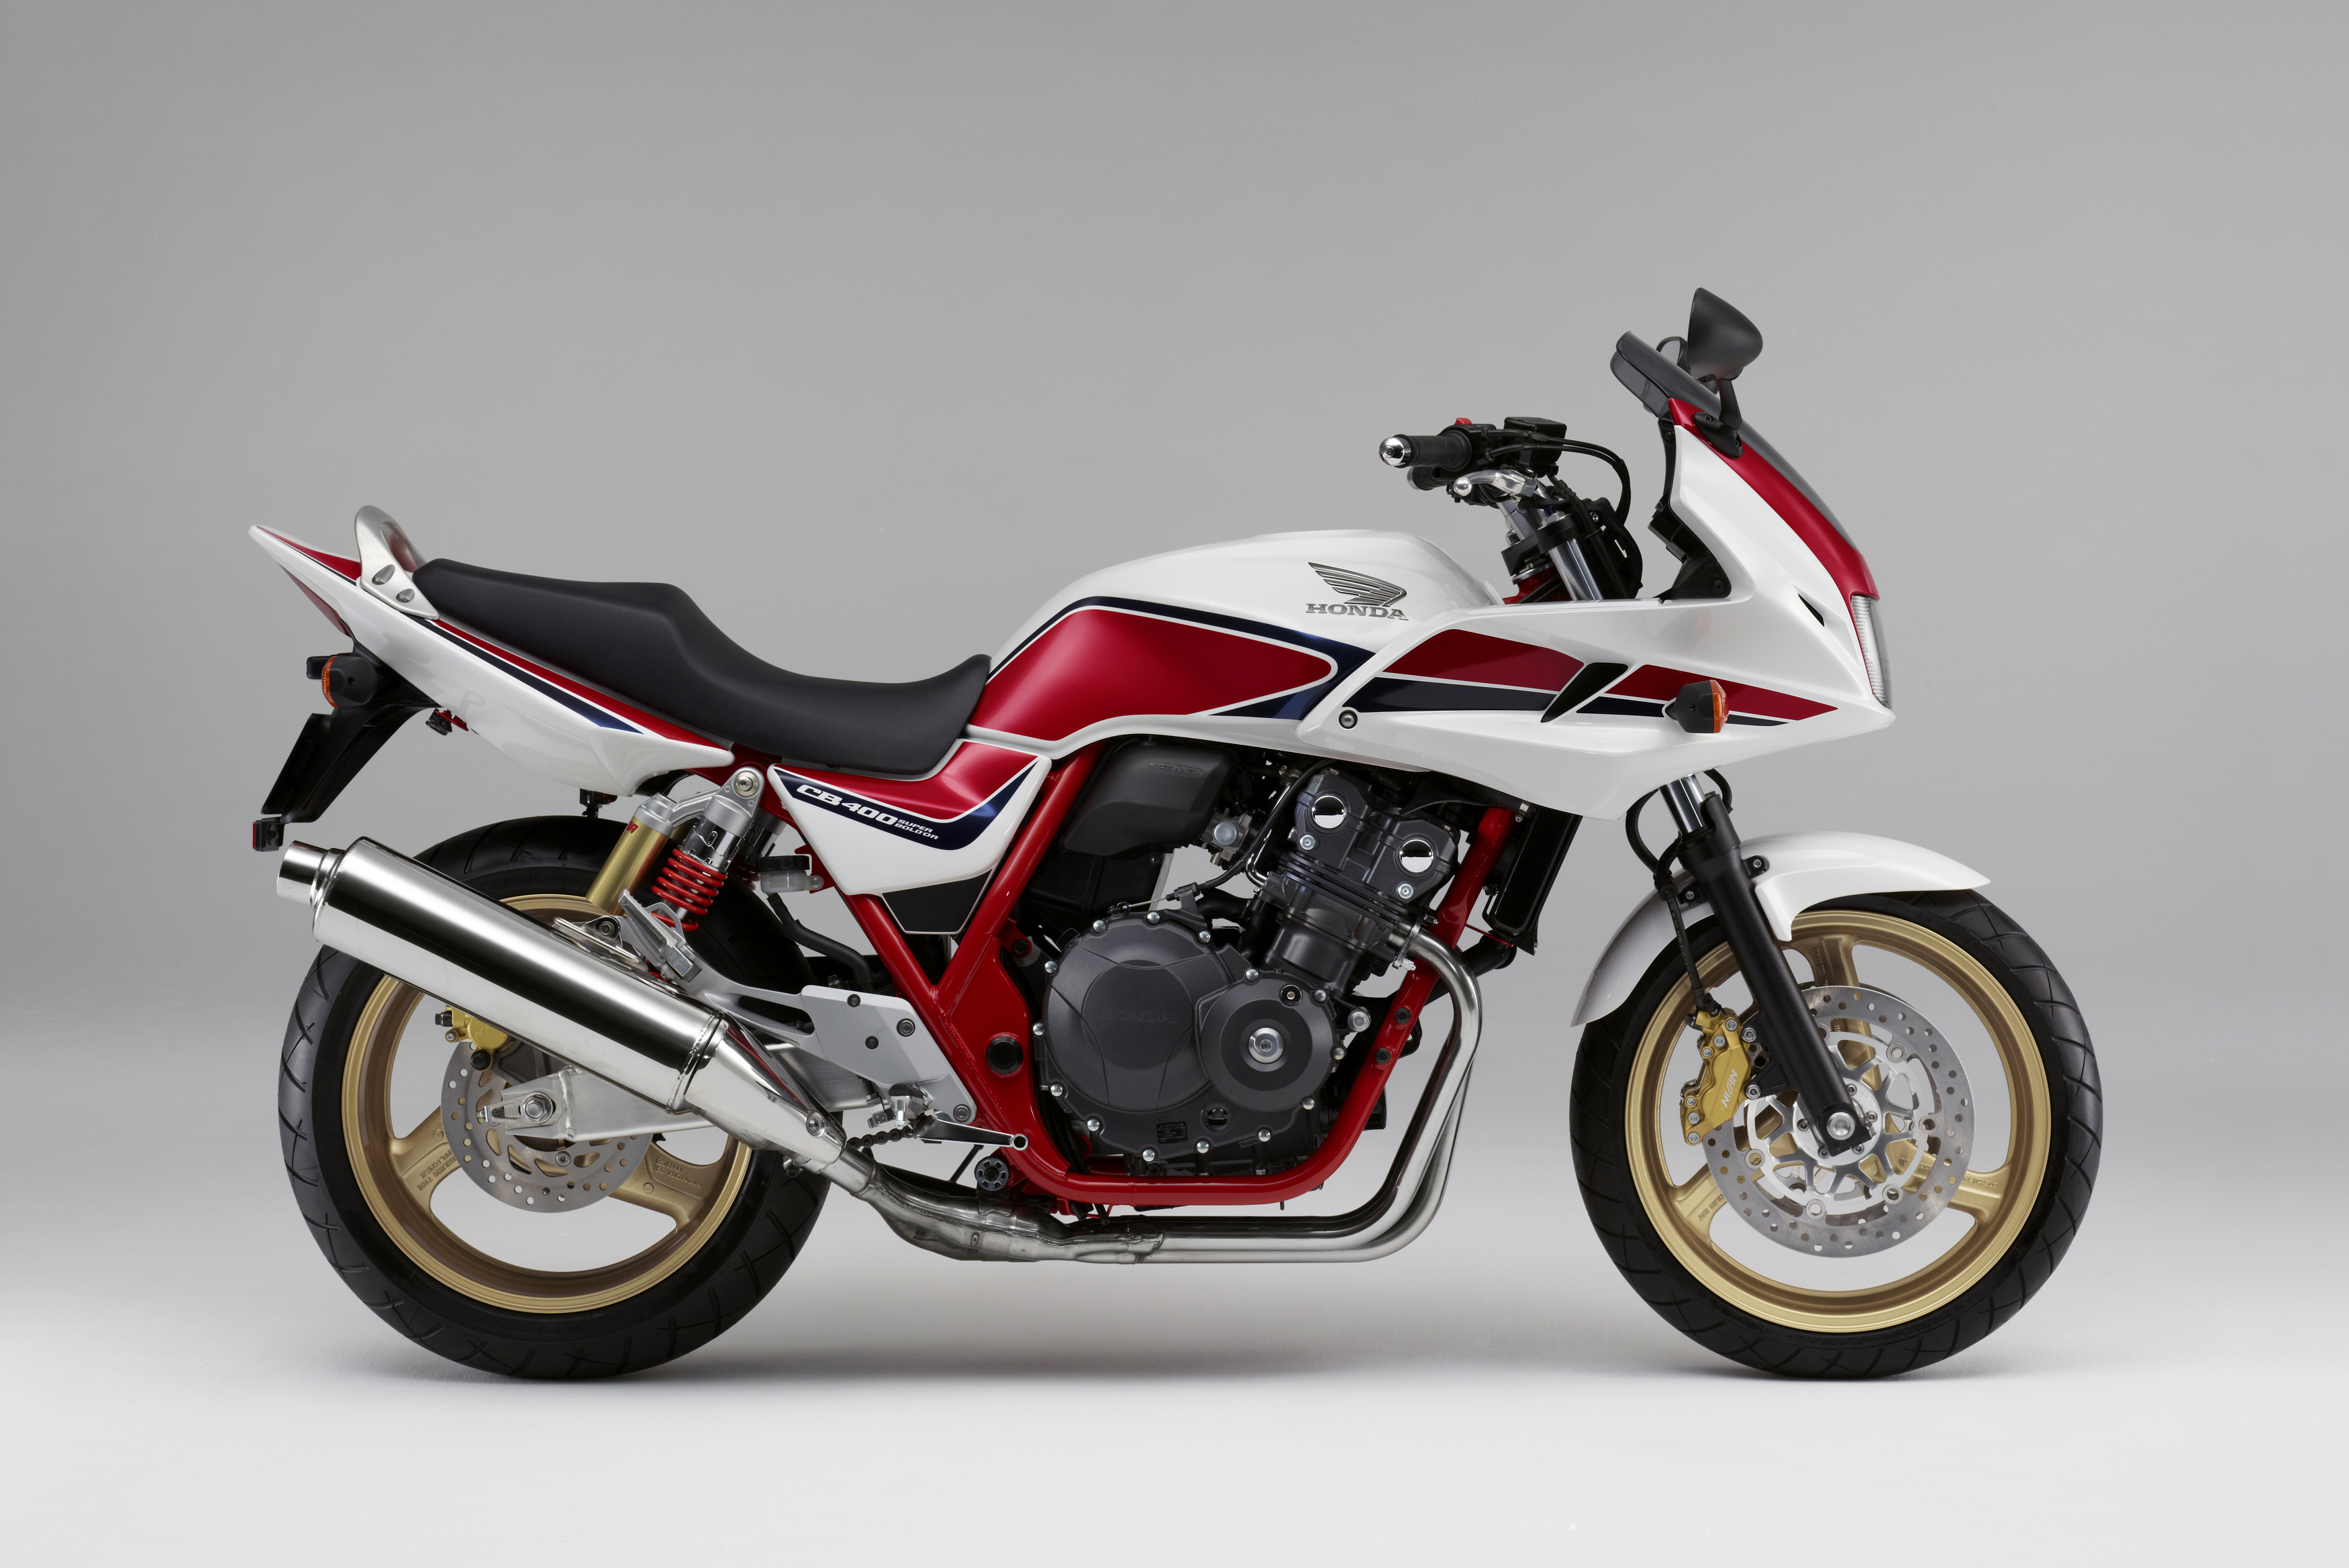 Honda CB400SF: photos and reviews. Motorcycle Specifications 76